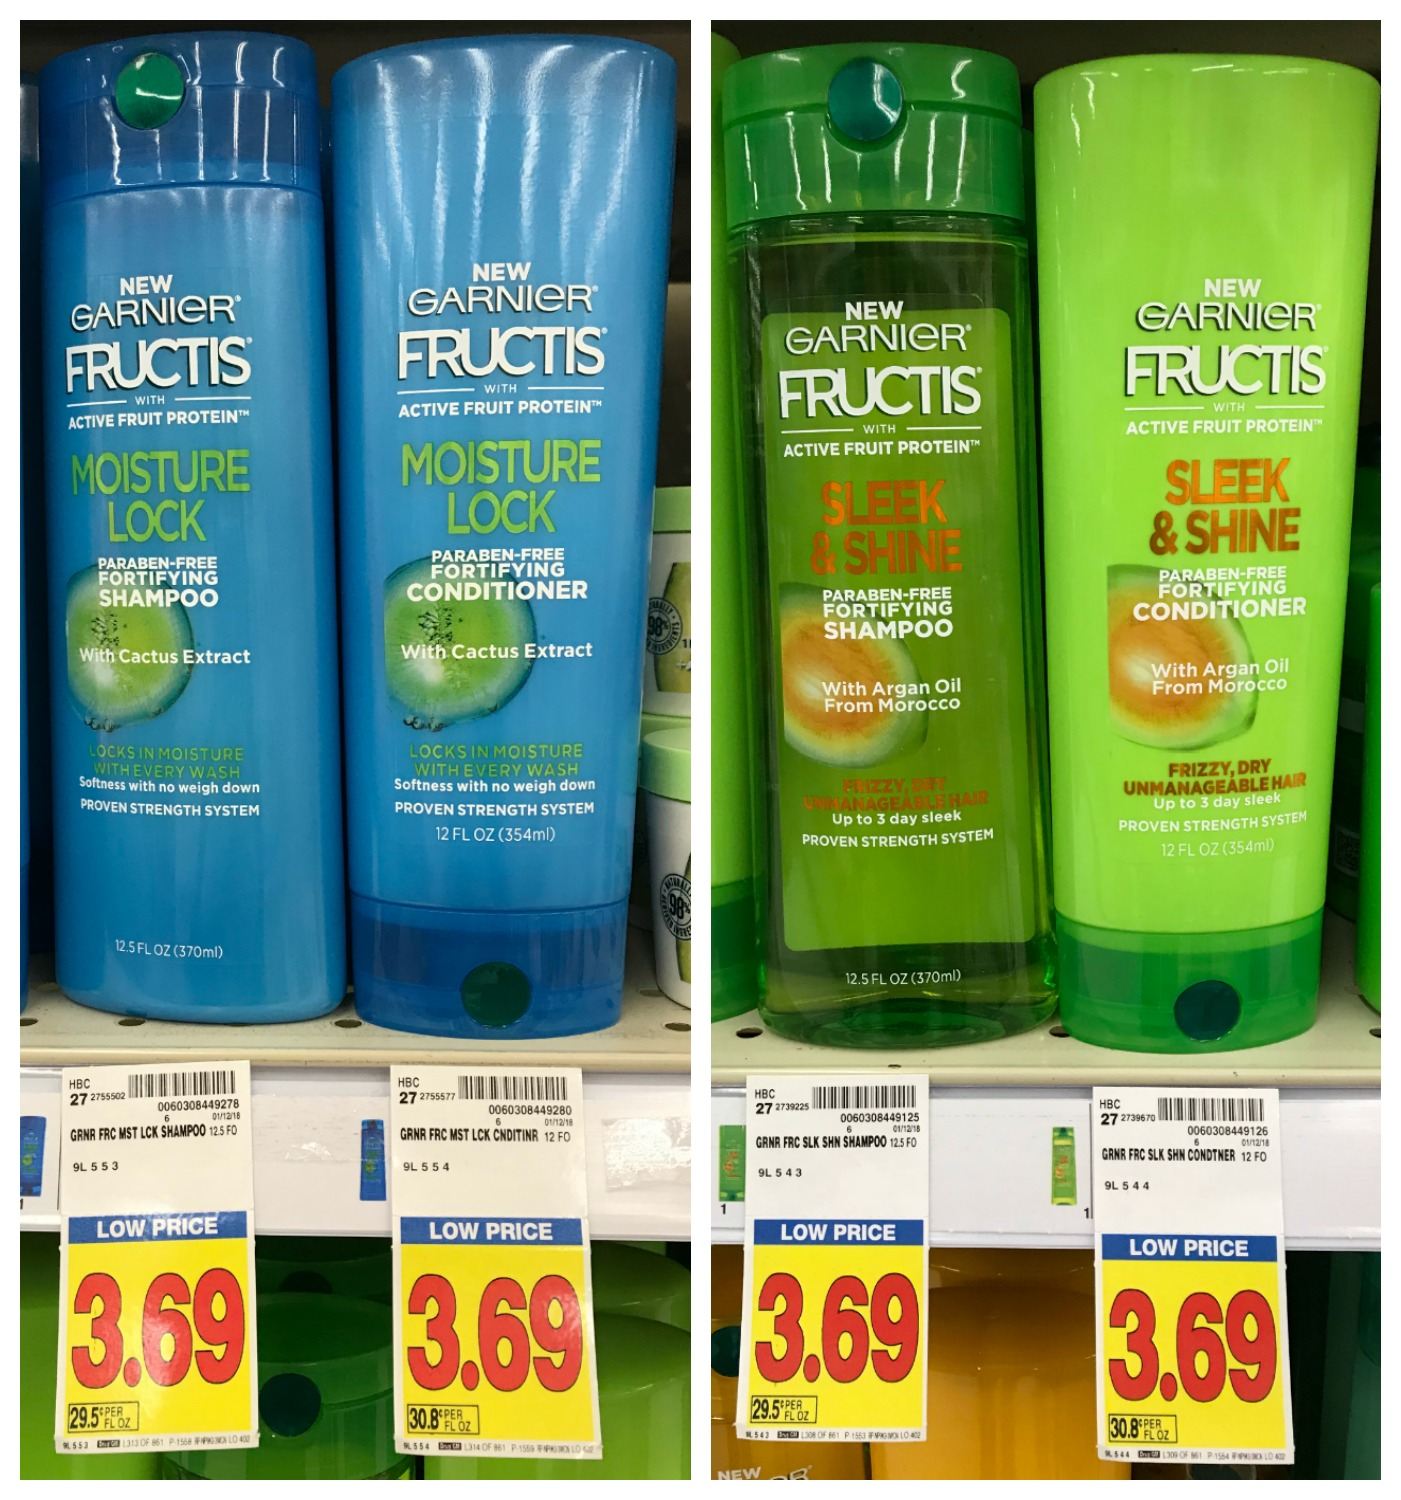 This is a graphic of Magic Printable Shampoo Coupons